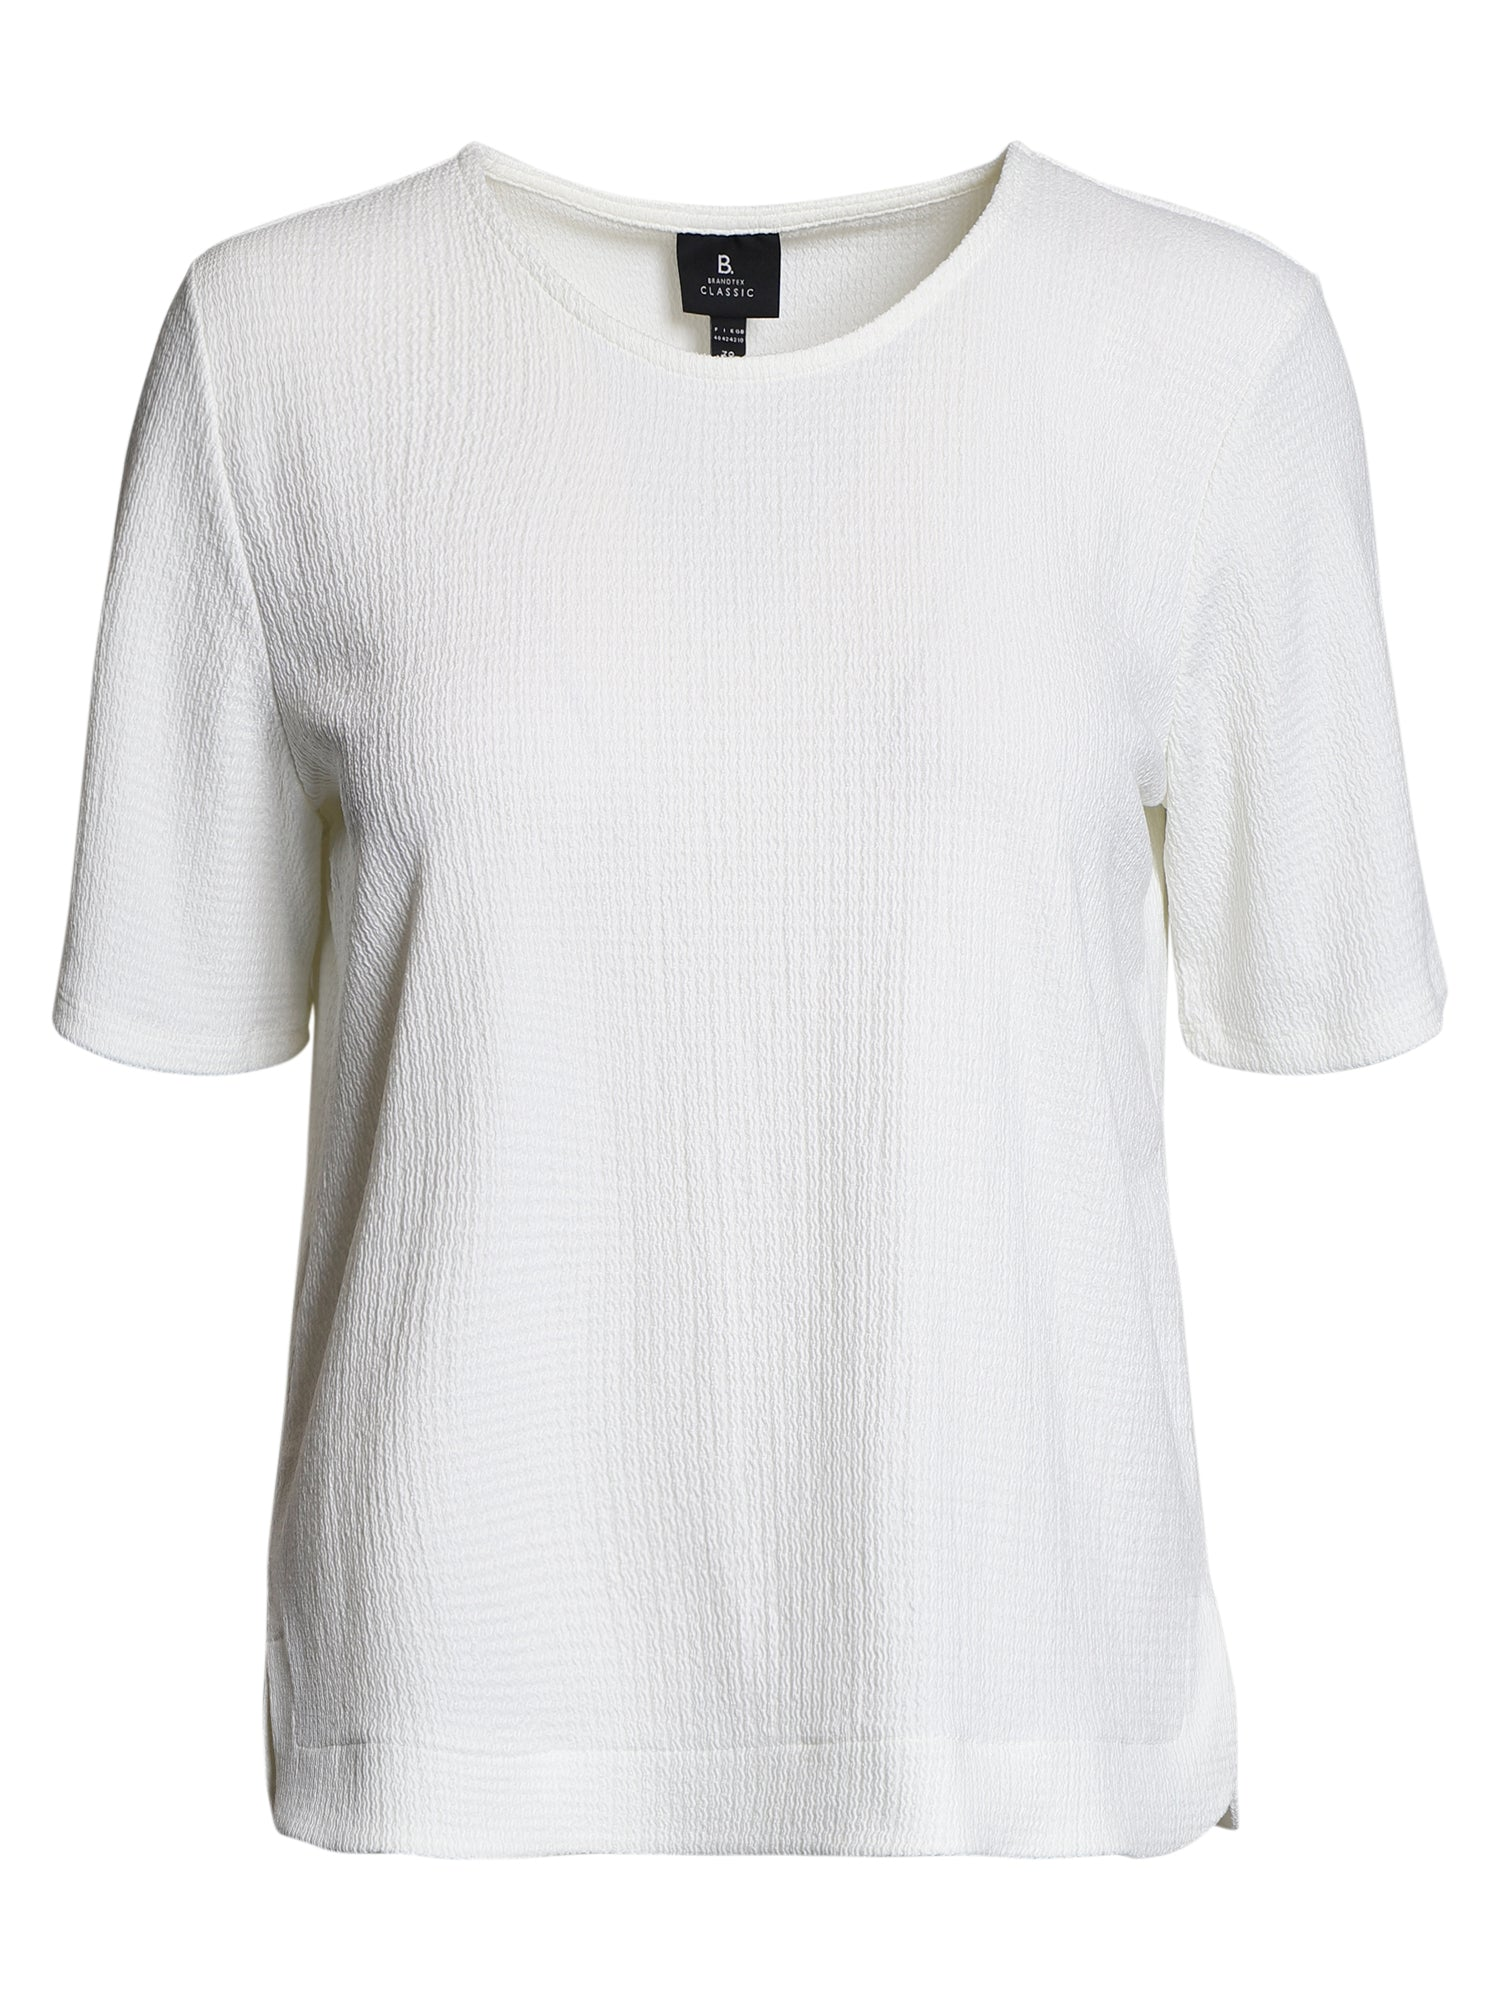 Image of   Bluse - Off White